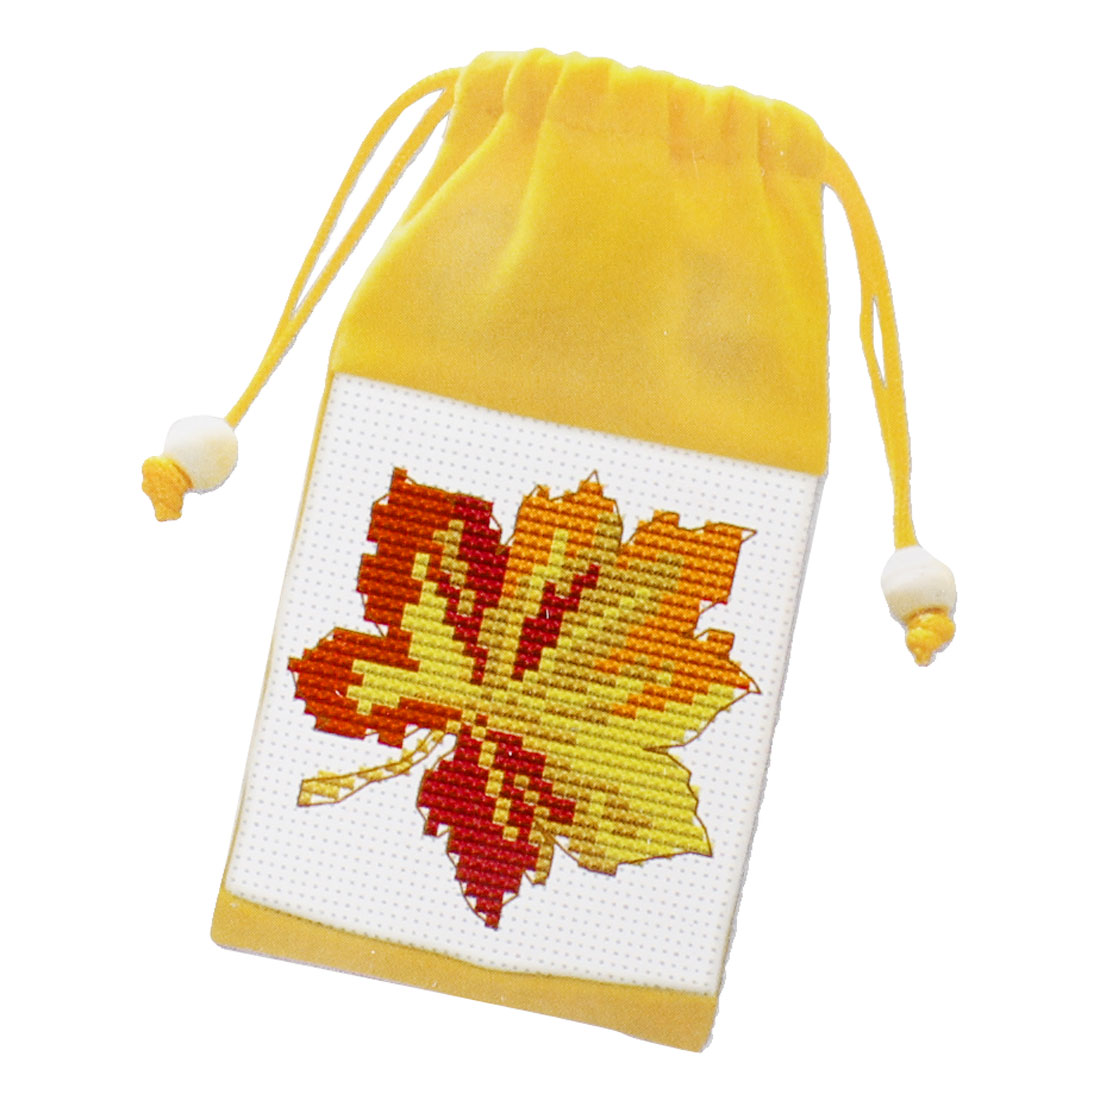 Leave Pattern Cross Stitch Counted Handmade Kit Cell Phone Bag Pouch